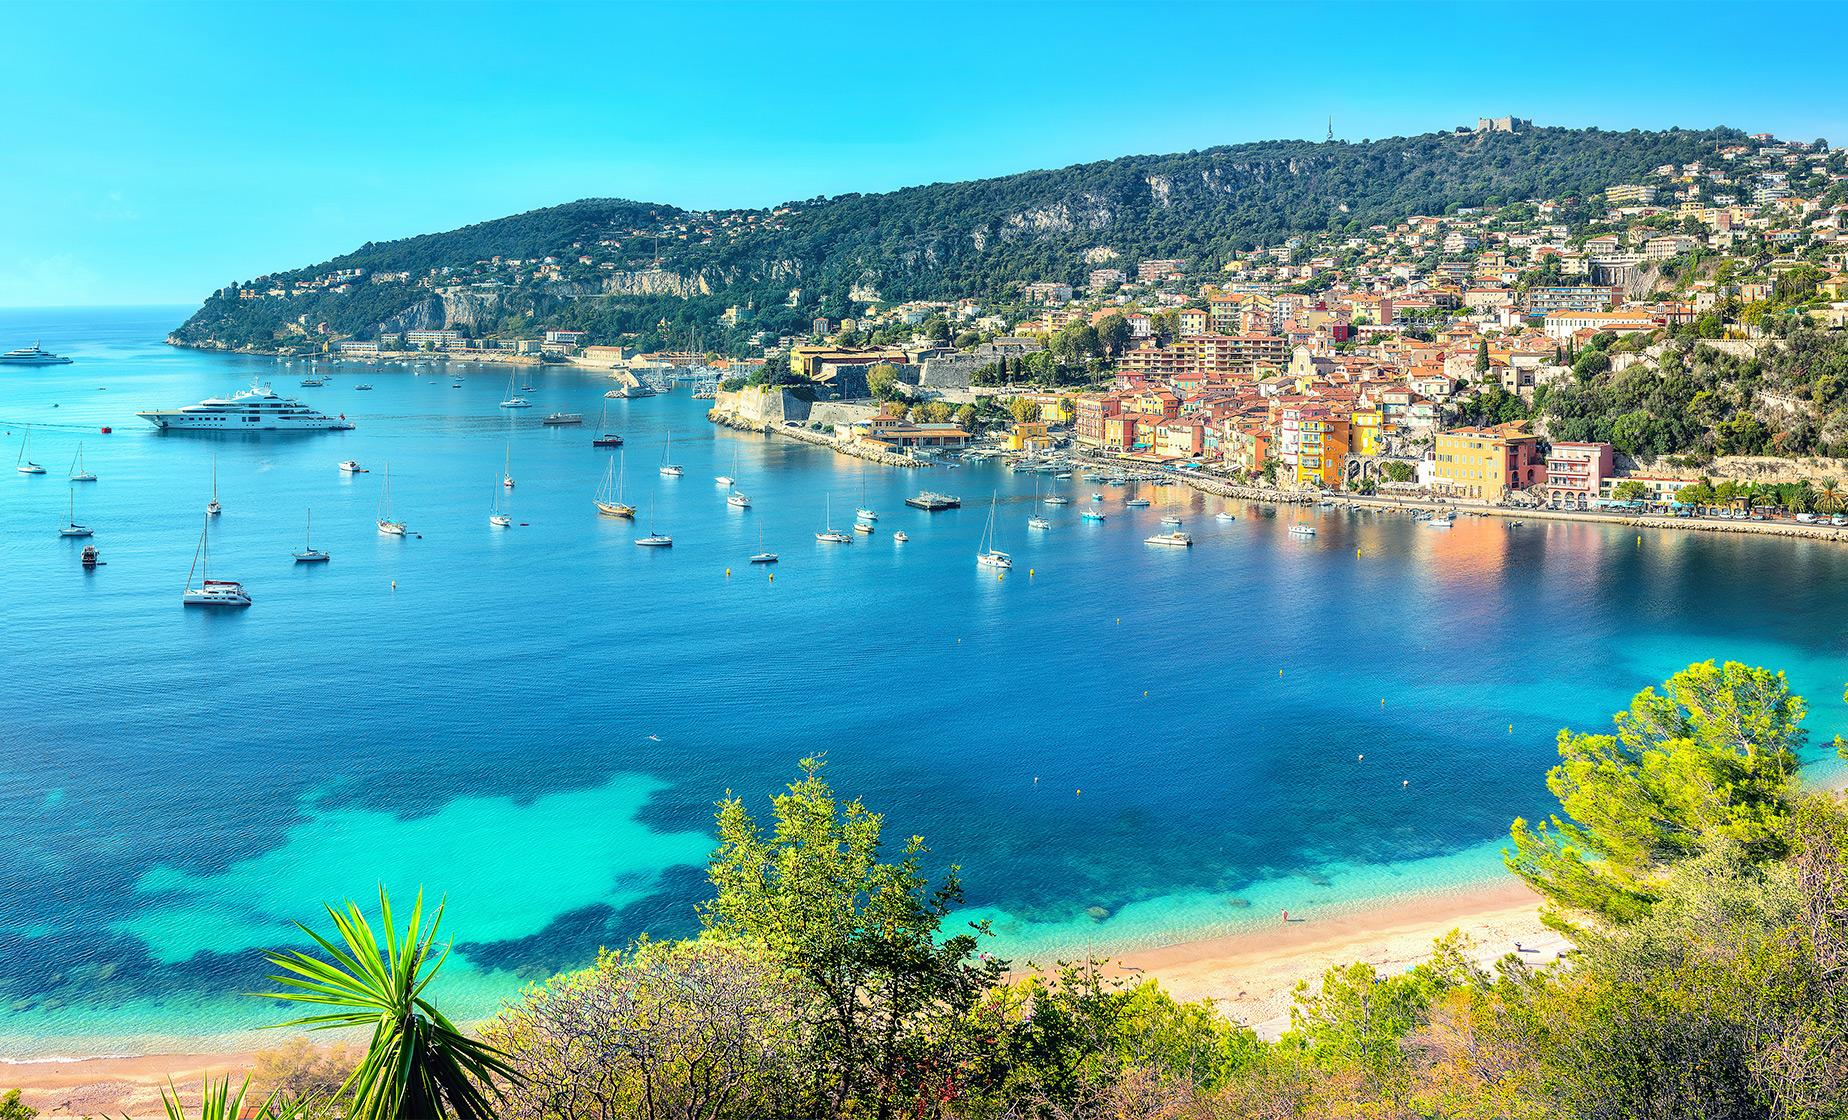 French Riviera Tour from Villefranche (Antibes, Croisette Boulevard)